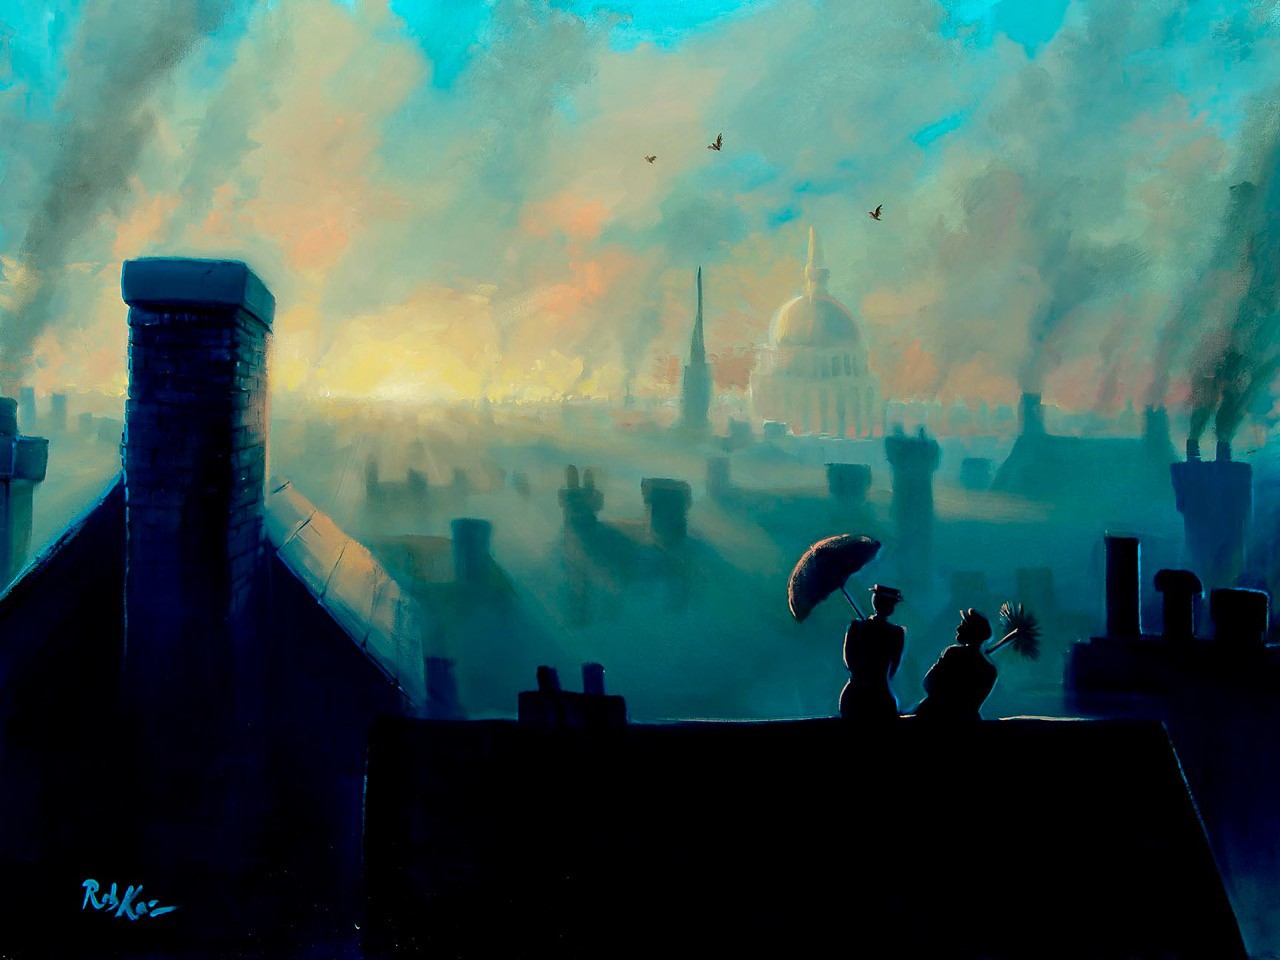 A View From The Chimneys by artist Rob Kaz, limited edition of 50